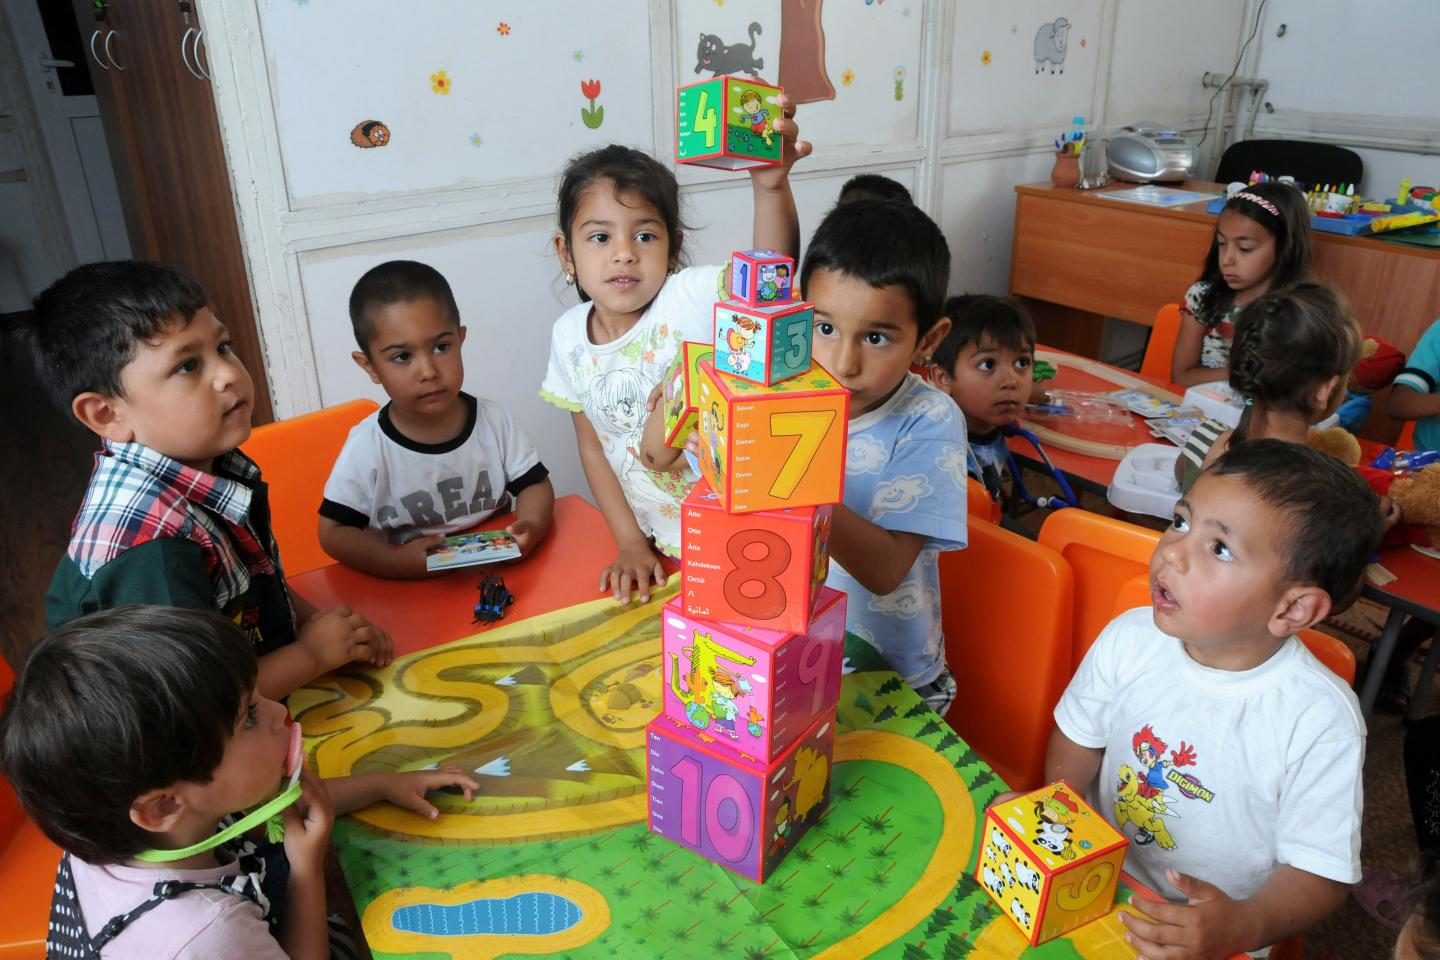 Children learning and playing at the kindergarten. They are building a tower of cubes